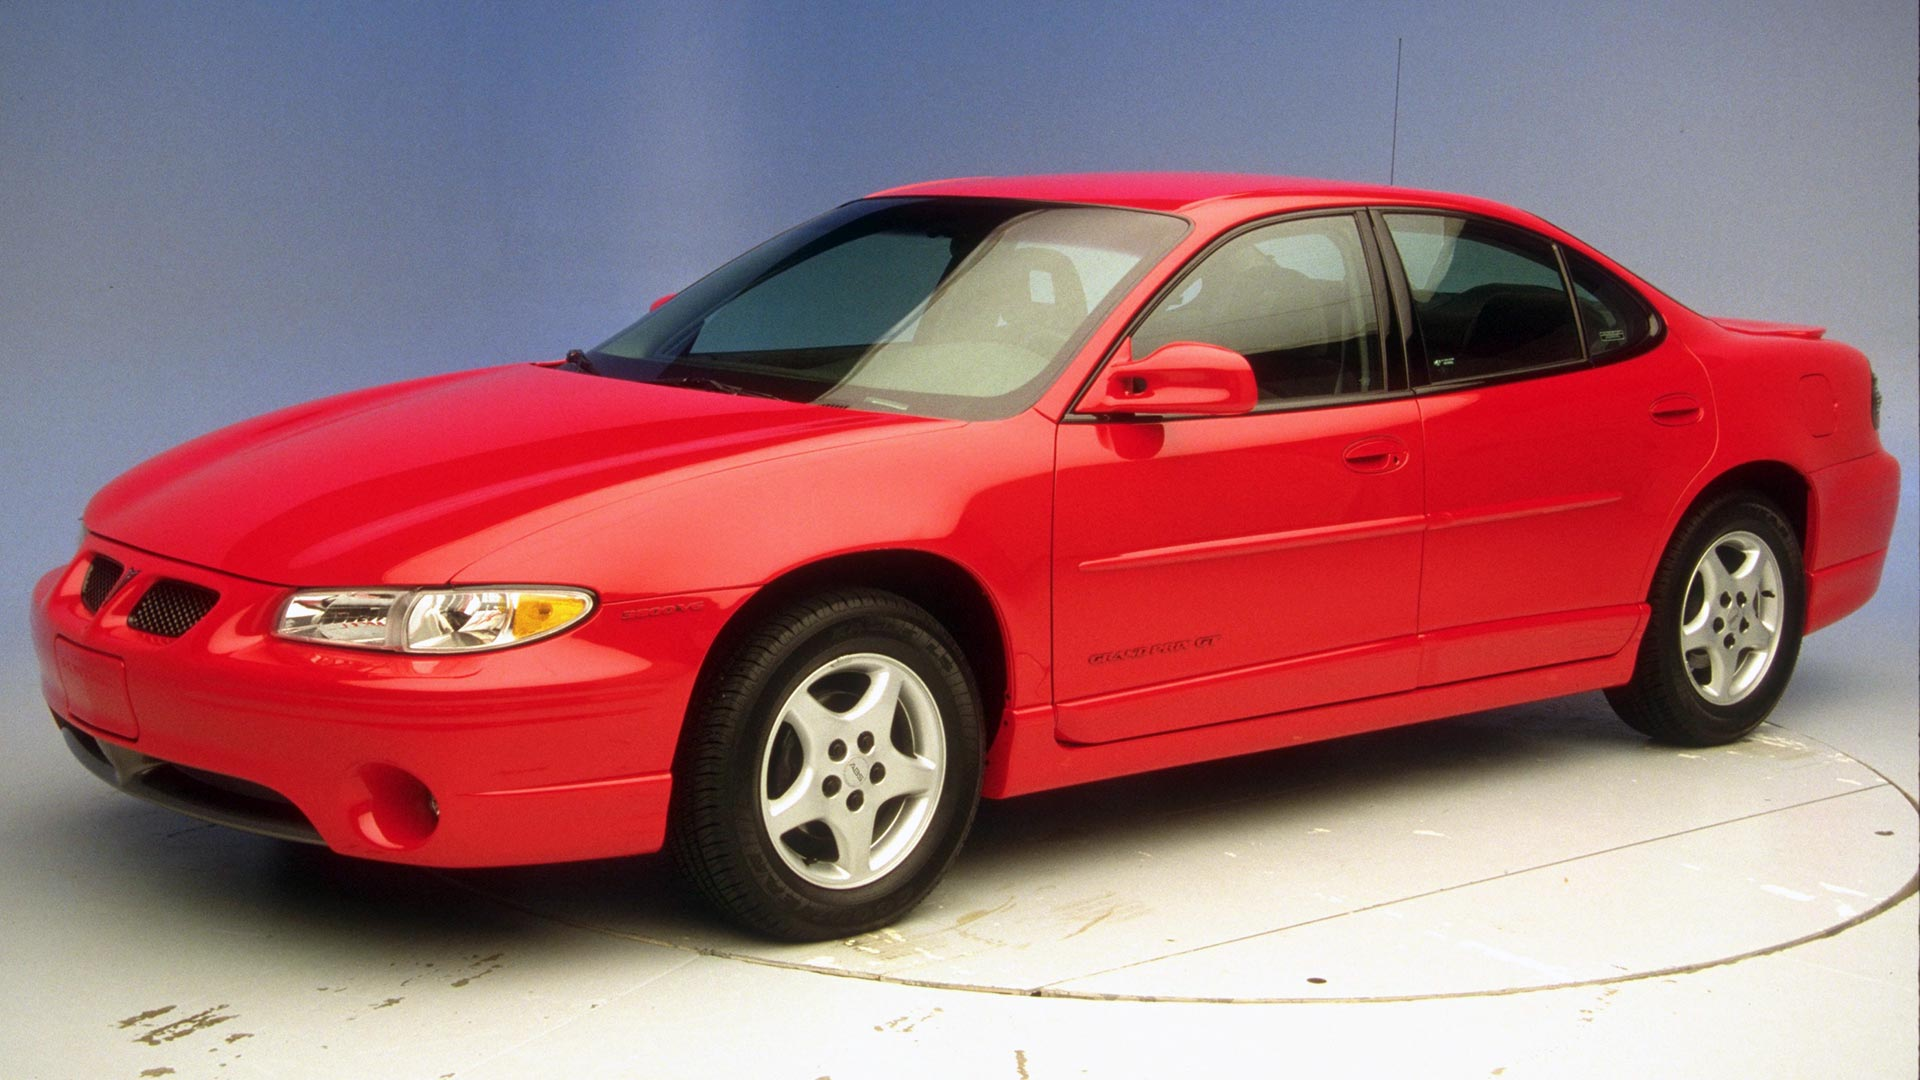 2001 Pontiac Grand Prix 4-door sedan